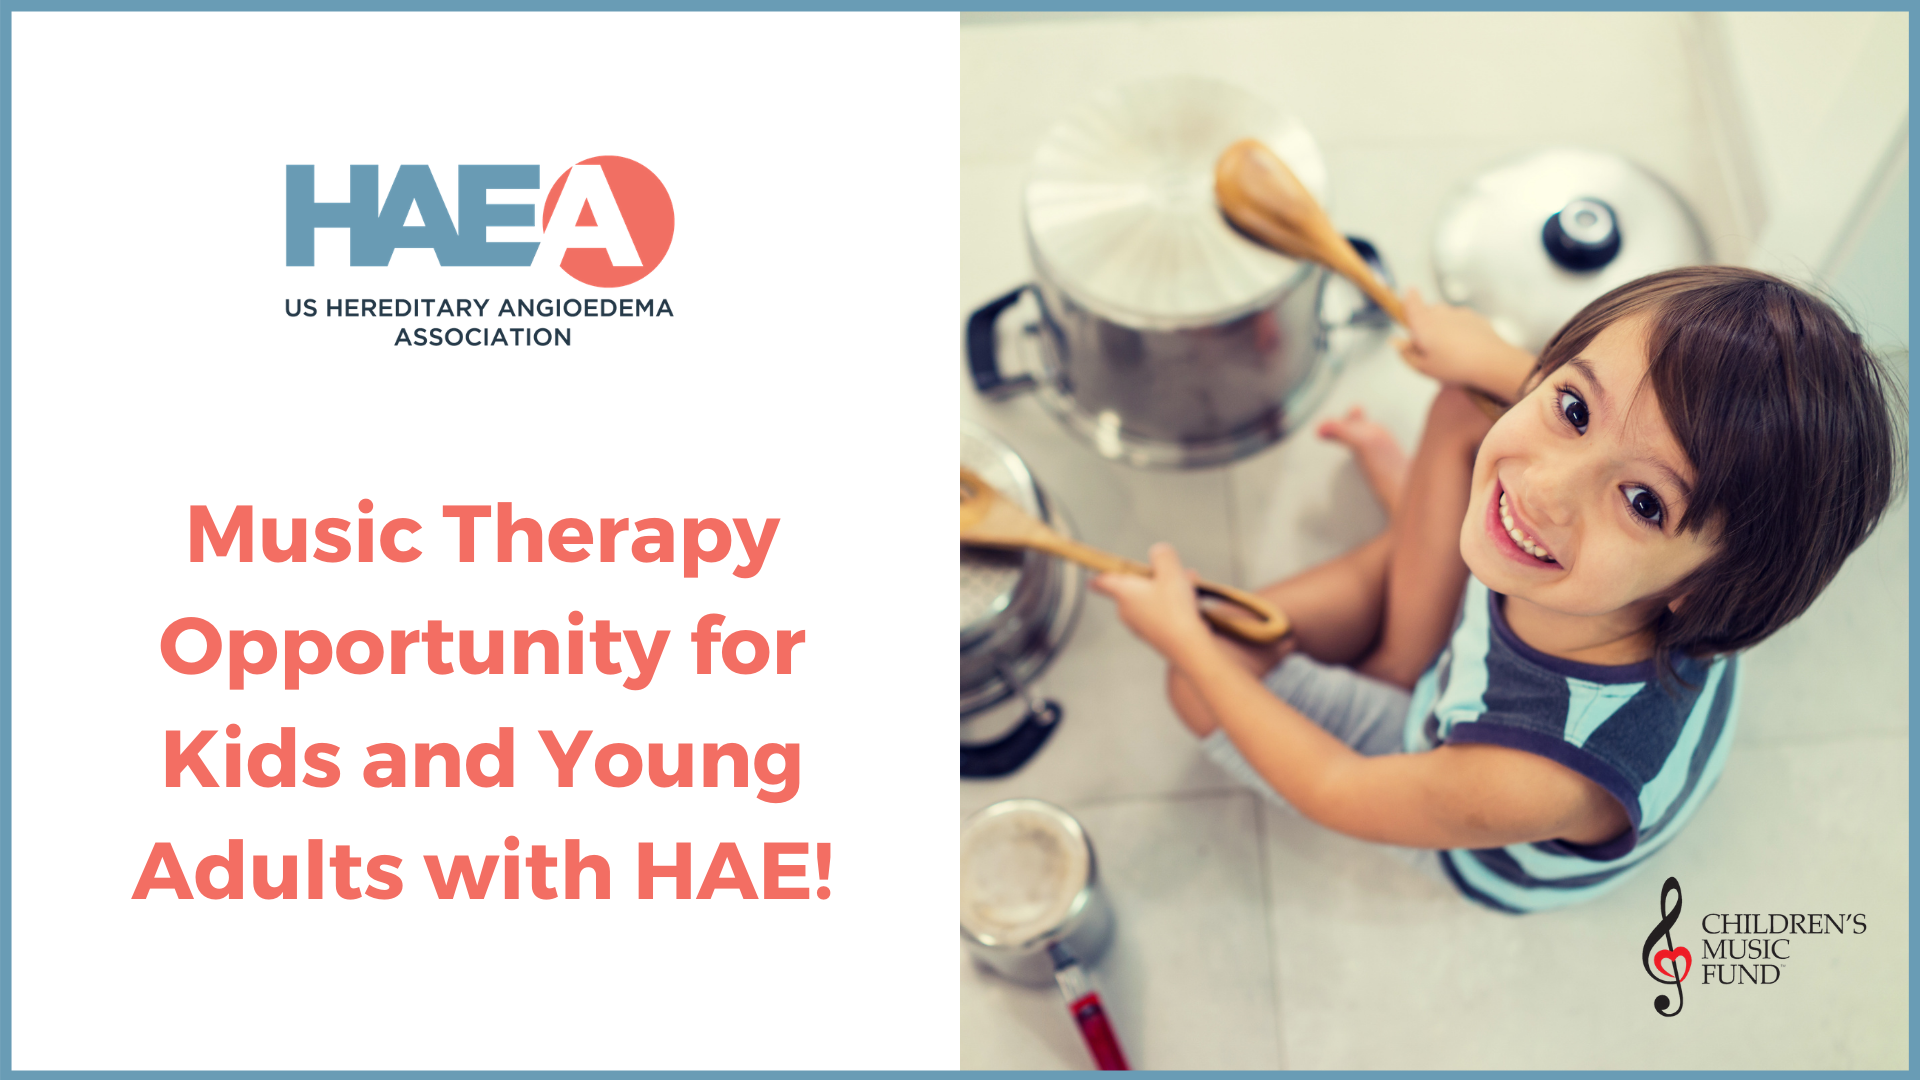 The HAEA is offering Scholarships for Youth and Young Adults  with HAE to enroll in a Music Therapy Program.